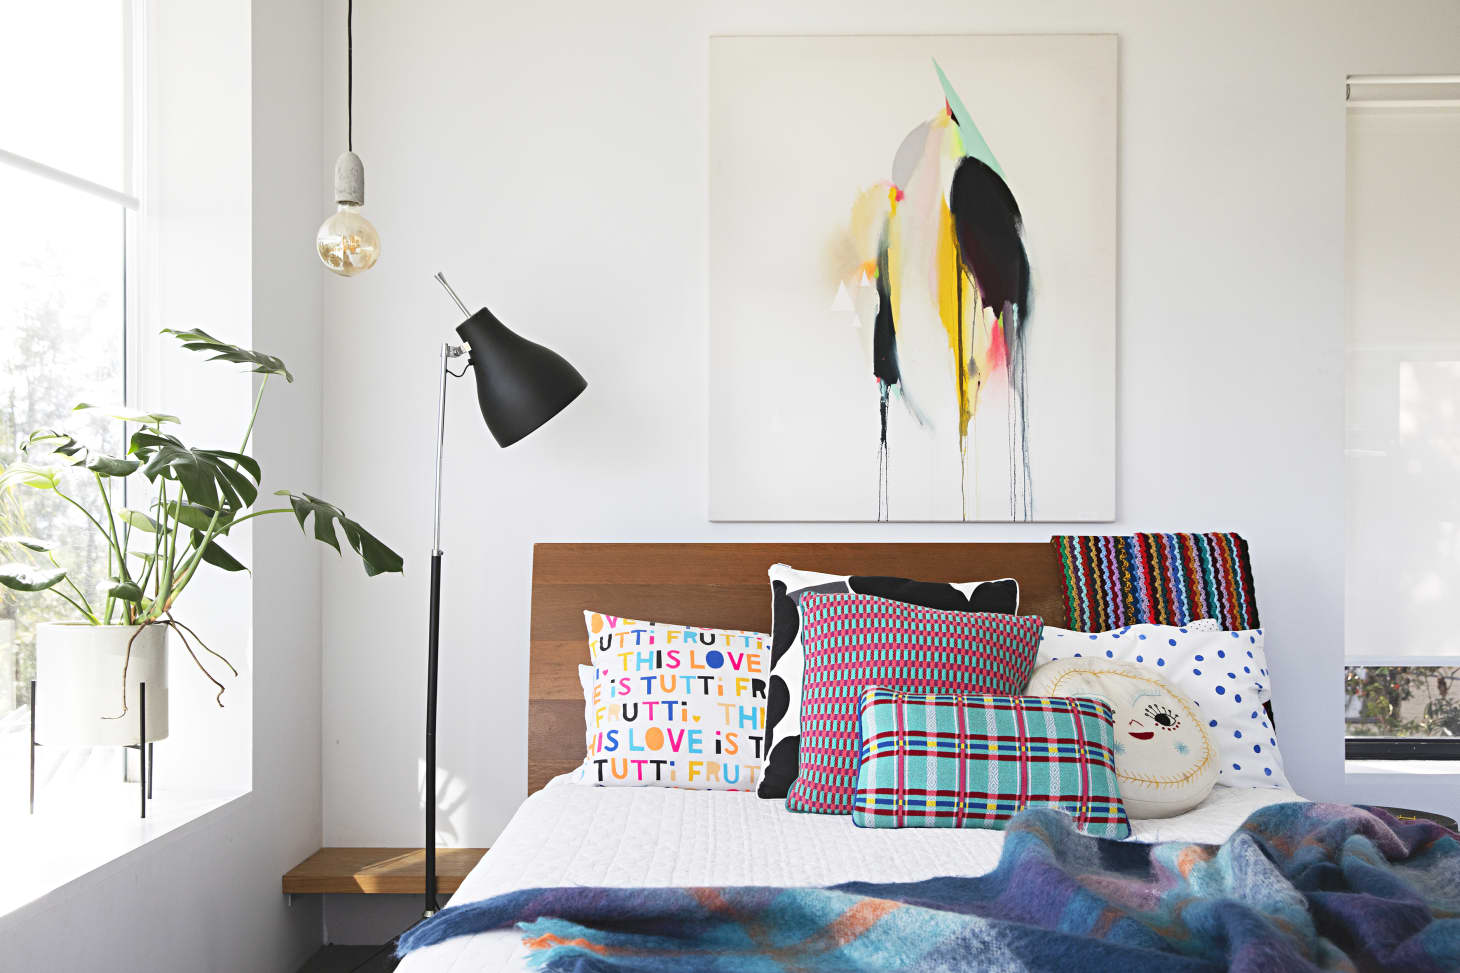 8 Things That'll Make Your Bedroom Look a Lot Better—Without Spending a Ton of Money